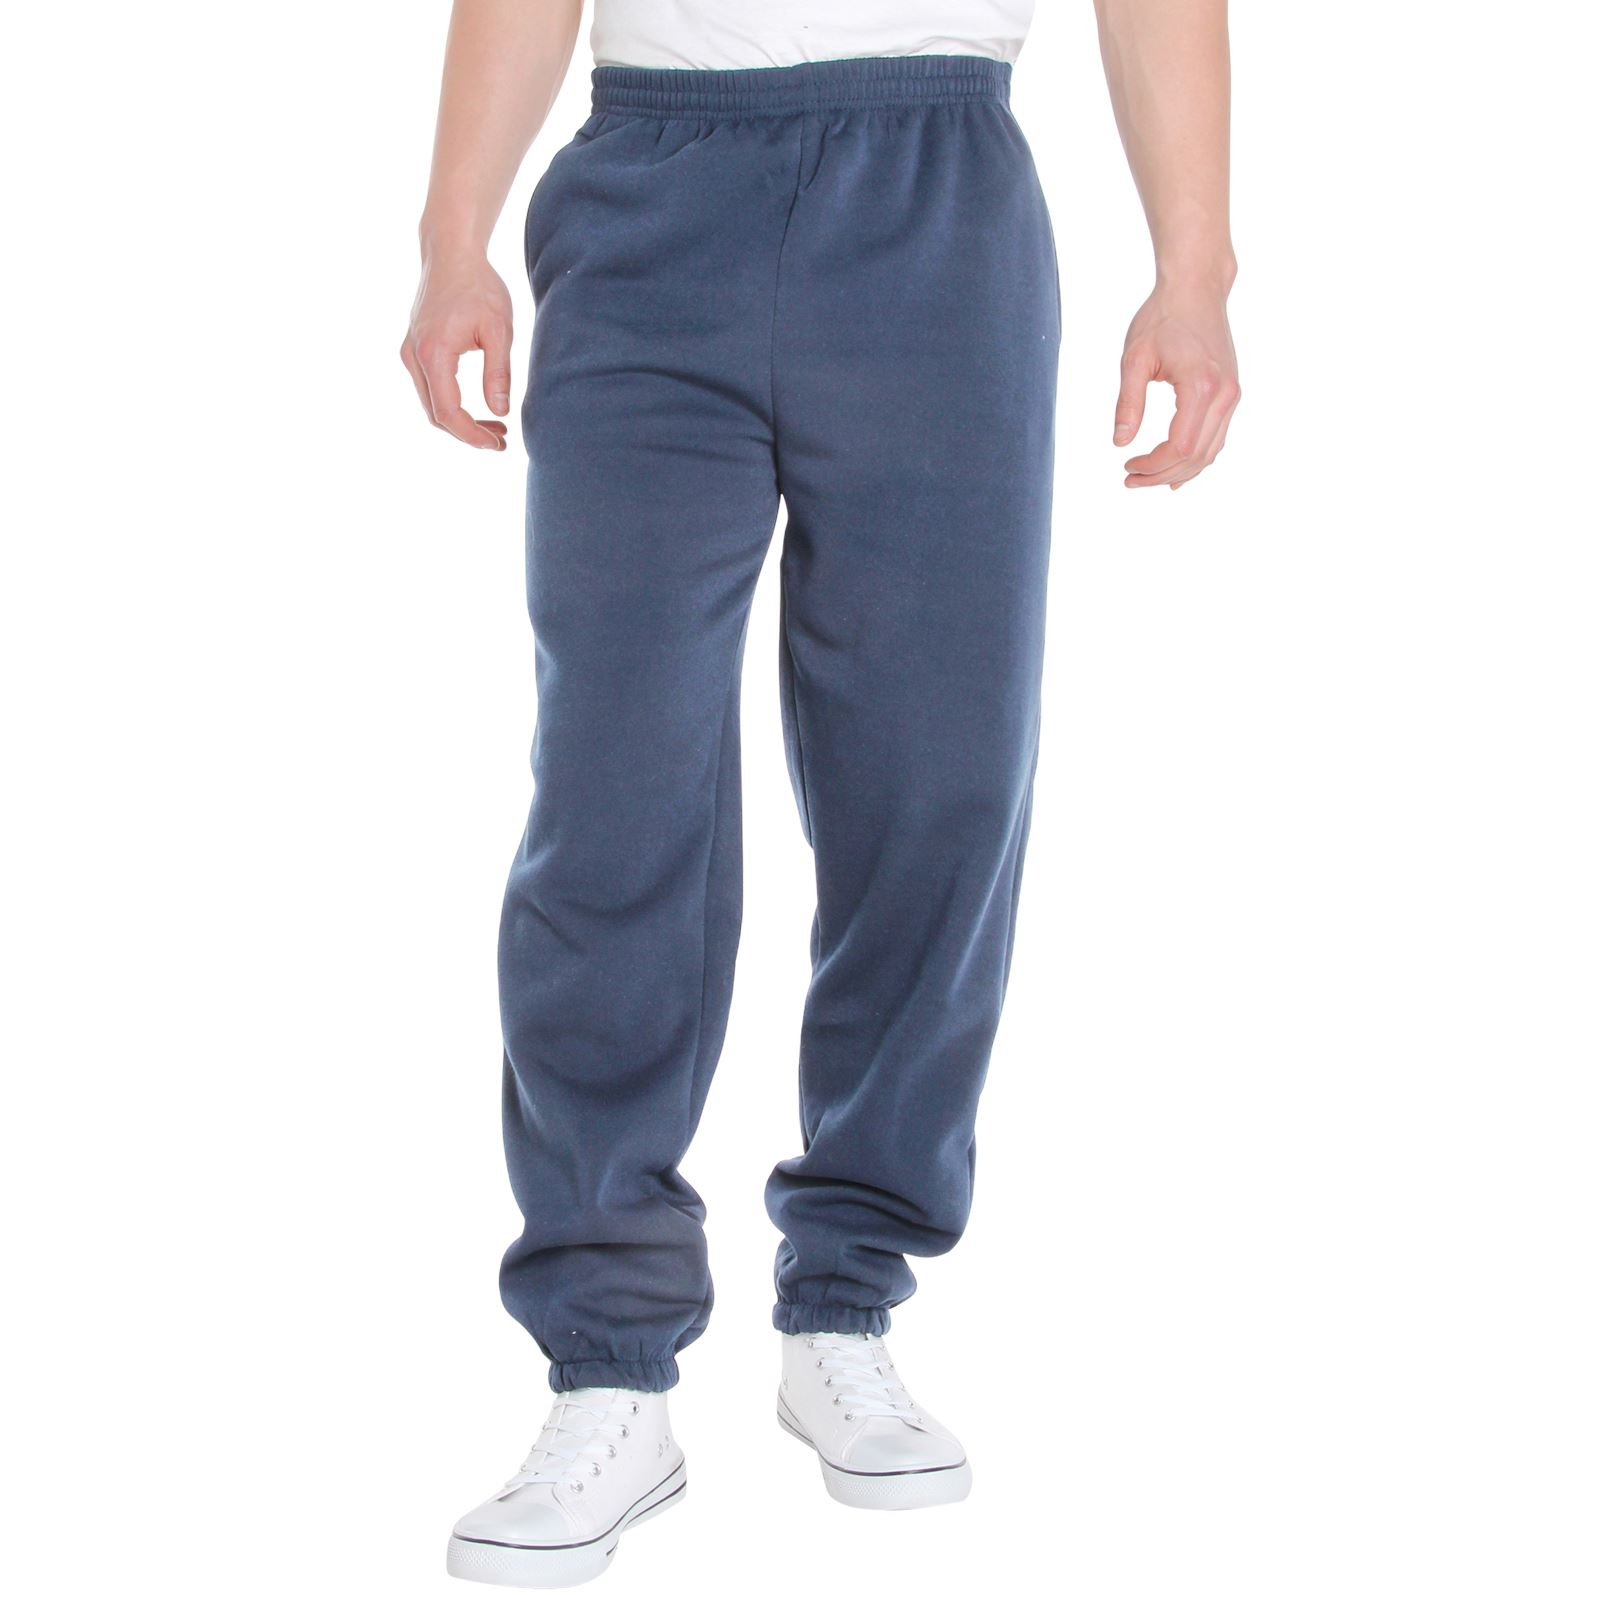 Mens-Tracksuit-Bottoms-Striped-Joggers-Jogging-Trousers-Fleece-Pants-Casual-Work thumbnail 11